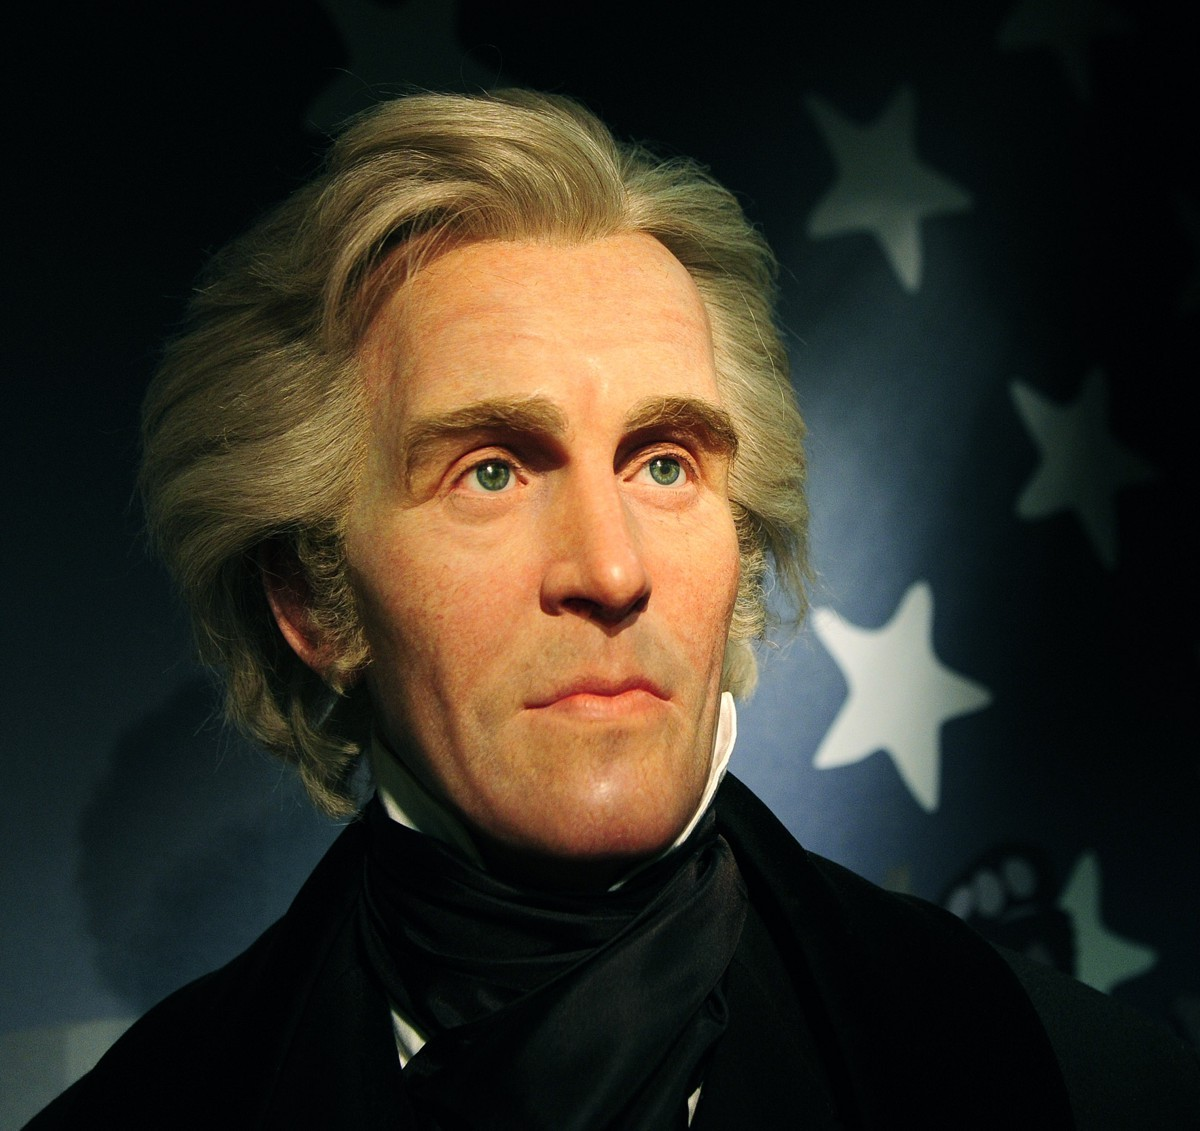 reasons why i think andrew jackson is perfect to be a us president hall of famer 1 lincoln is enshrined in the wrestling hall of fame the great emancipator wasn't quite wwe material, but thanks to his long limbs he was an accomplished wrestler as a young man.